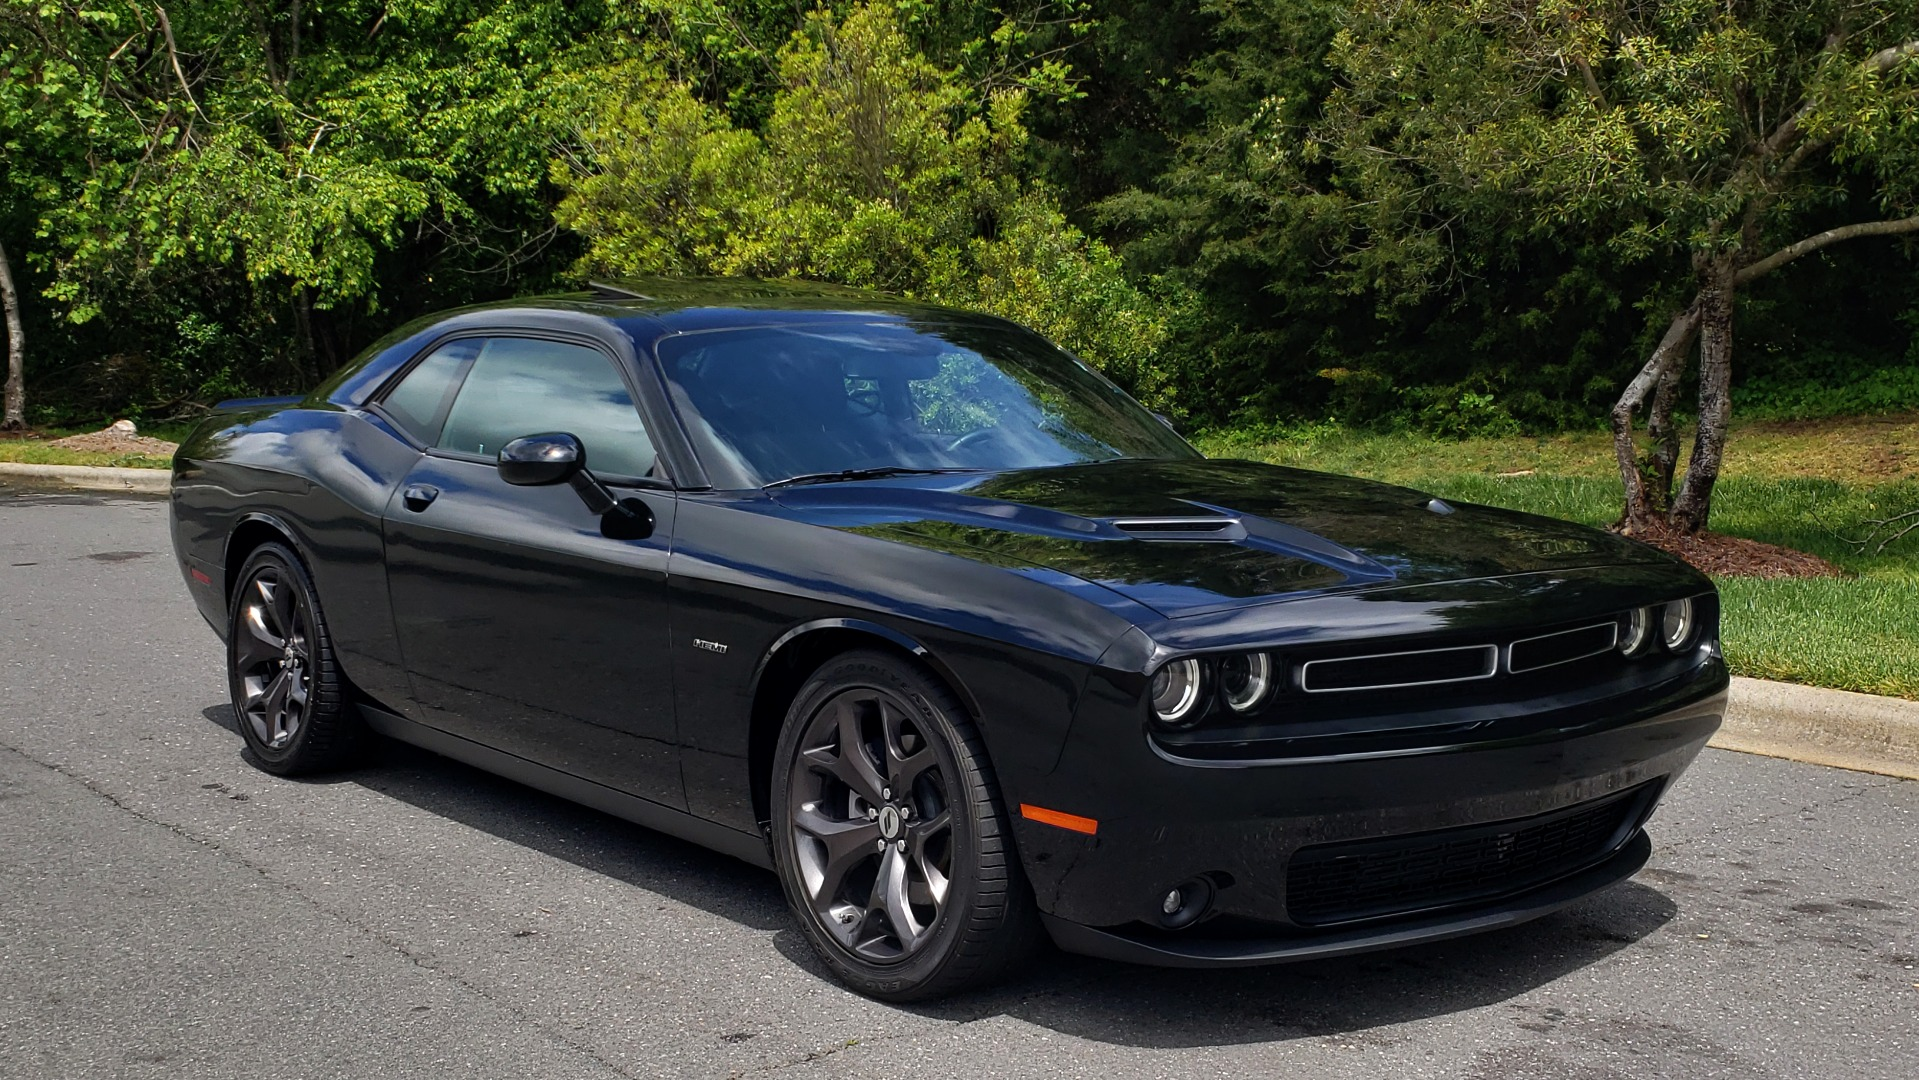 Used 2017 Dodge CHALLENGER R/T / 5.7L HEMI V8 / 8-SPD AUTO / SUNROOF / REARVIEW for sale Sold at Formula Imports in Charlotte NC 28227 5